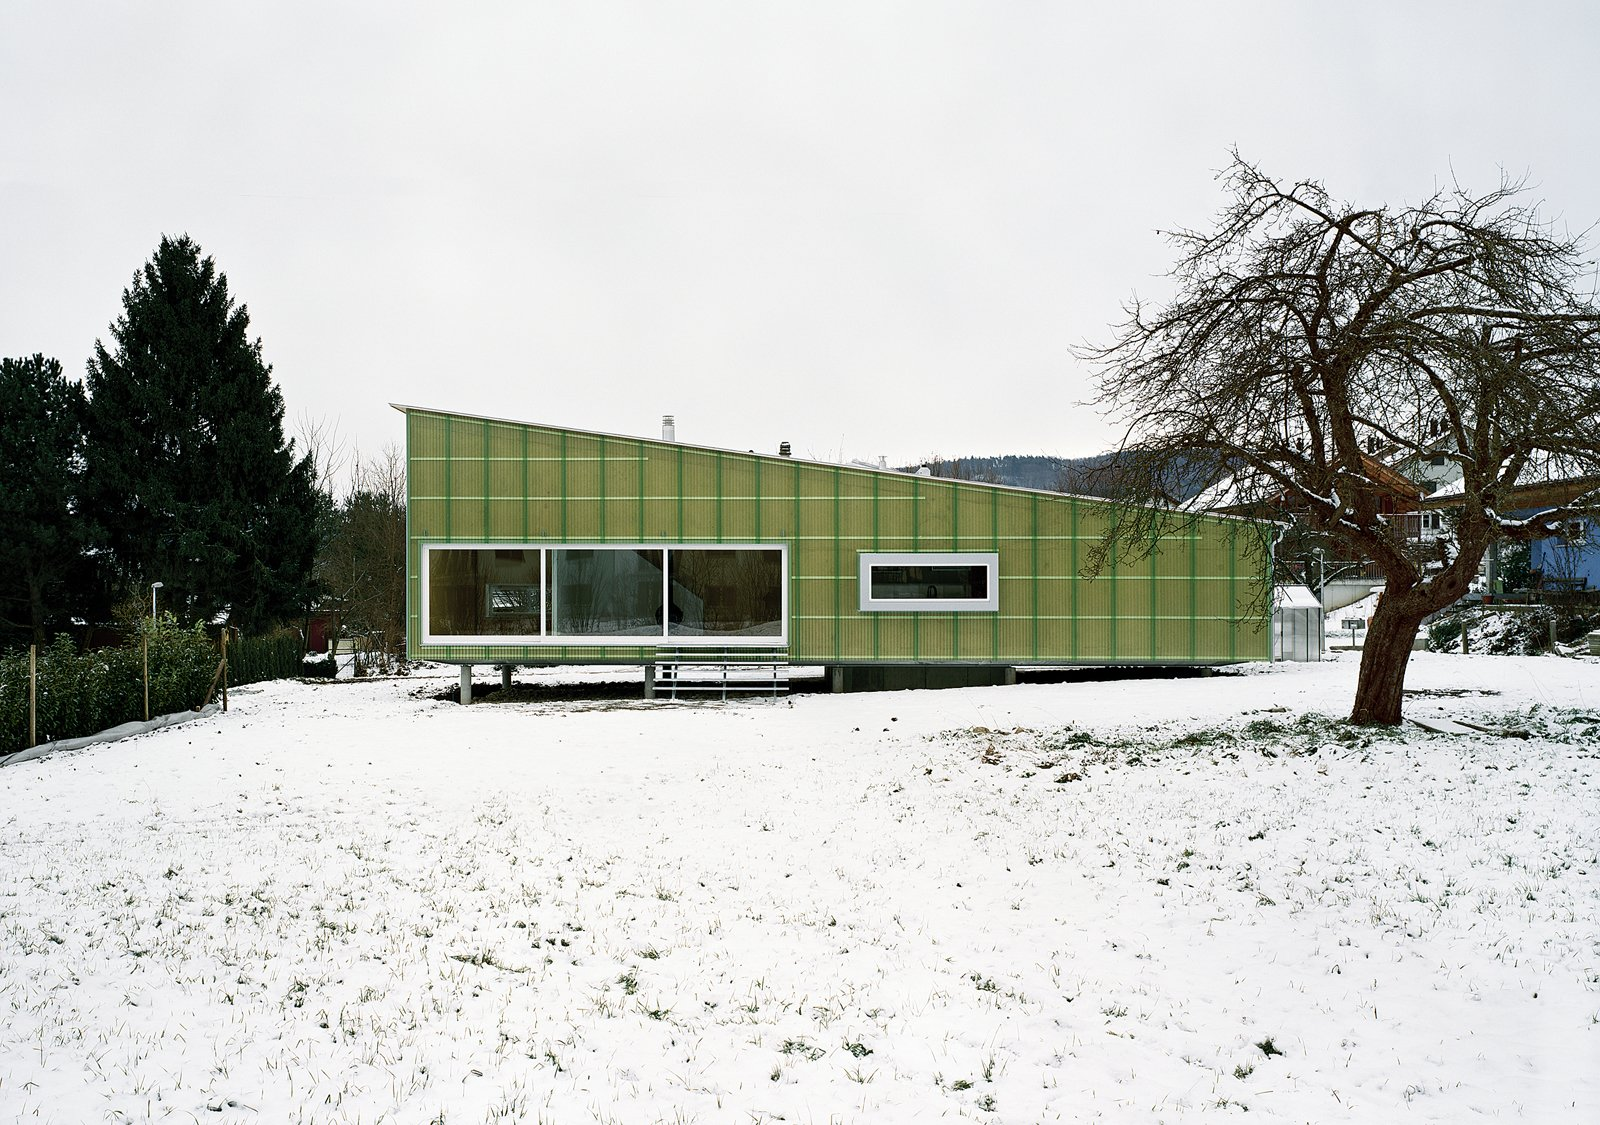 The entire house is made from slabs of prefabricated, formaldehyde-free compressed straw.